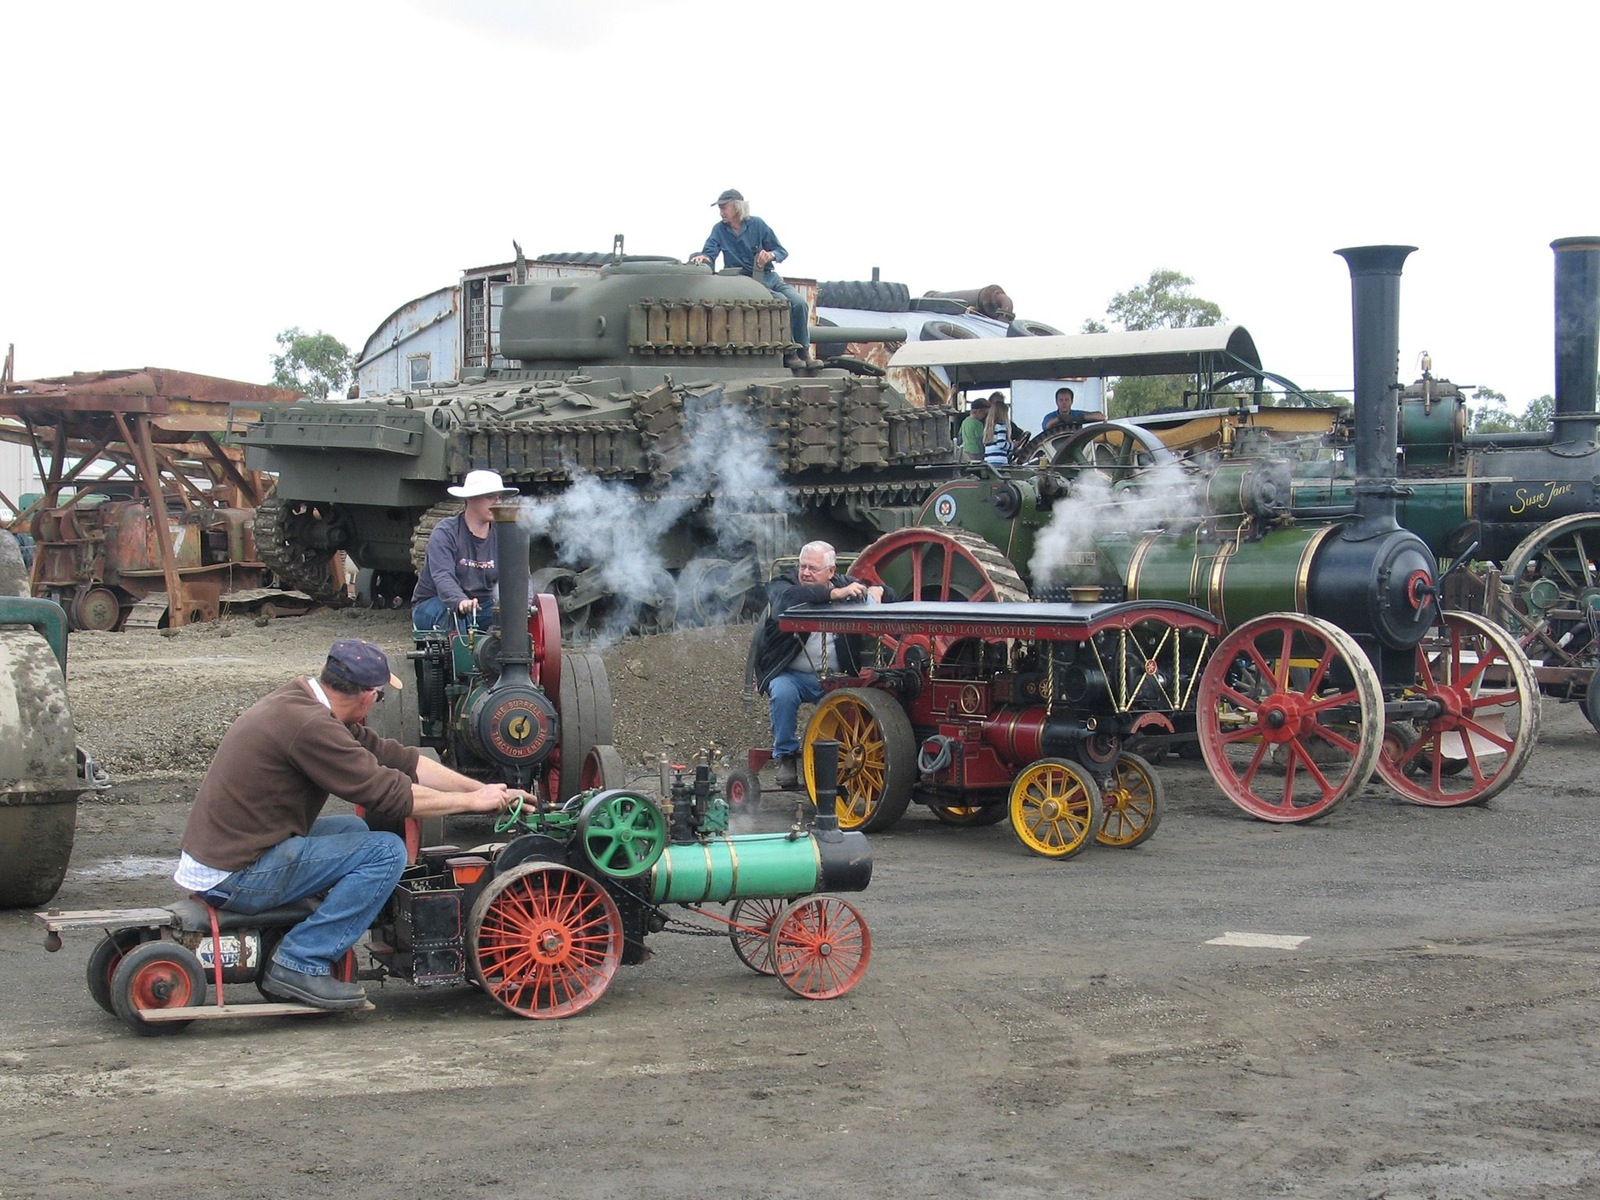 Steam engines of all sizes